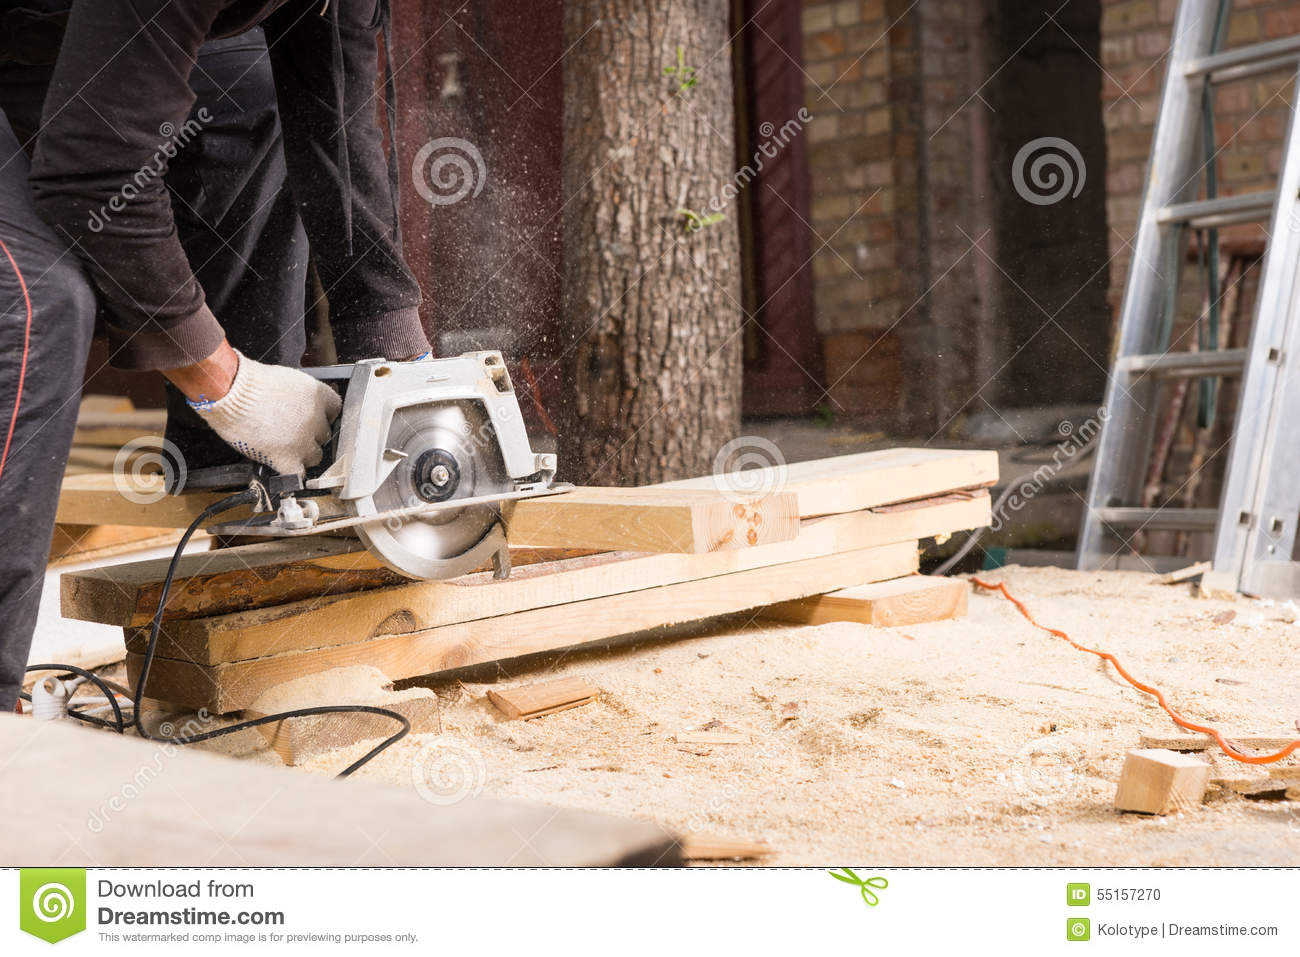 Man Using Power Saw To Cut Planks Of Wood Stock Photo